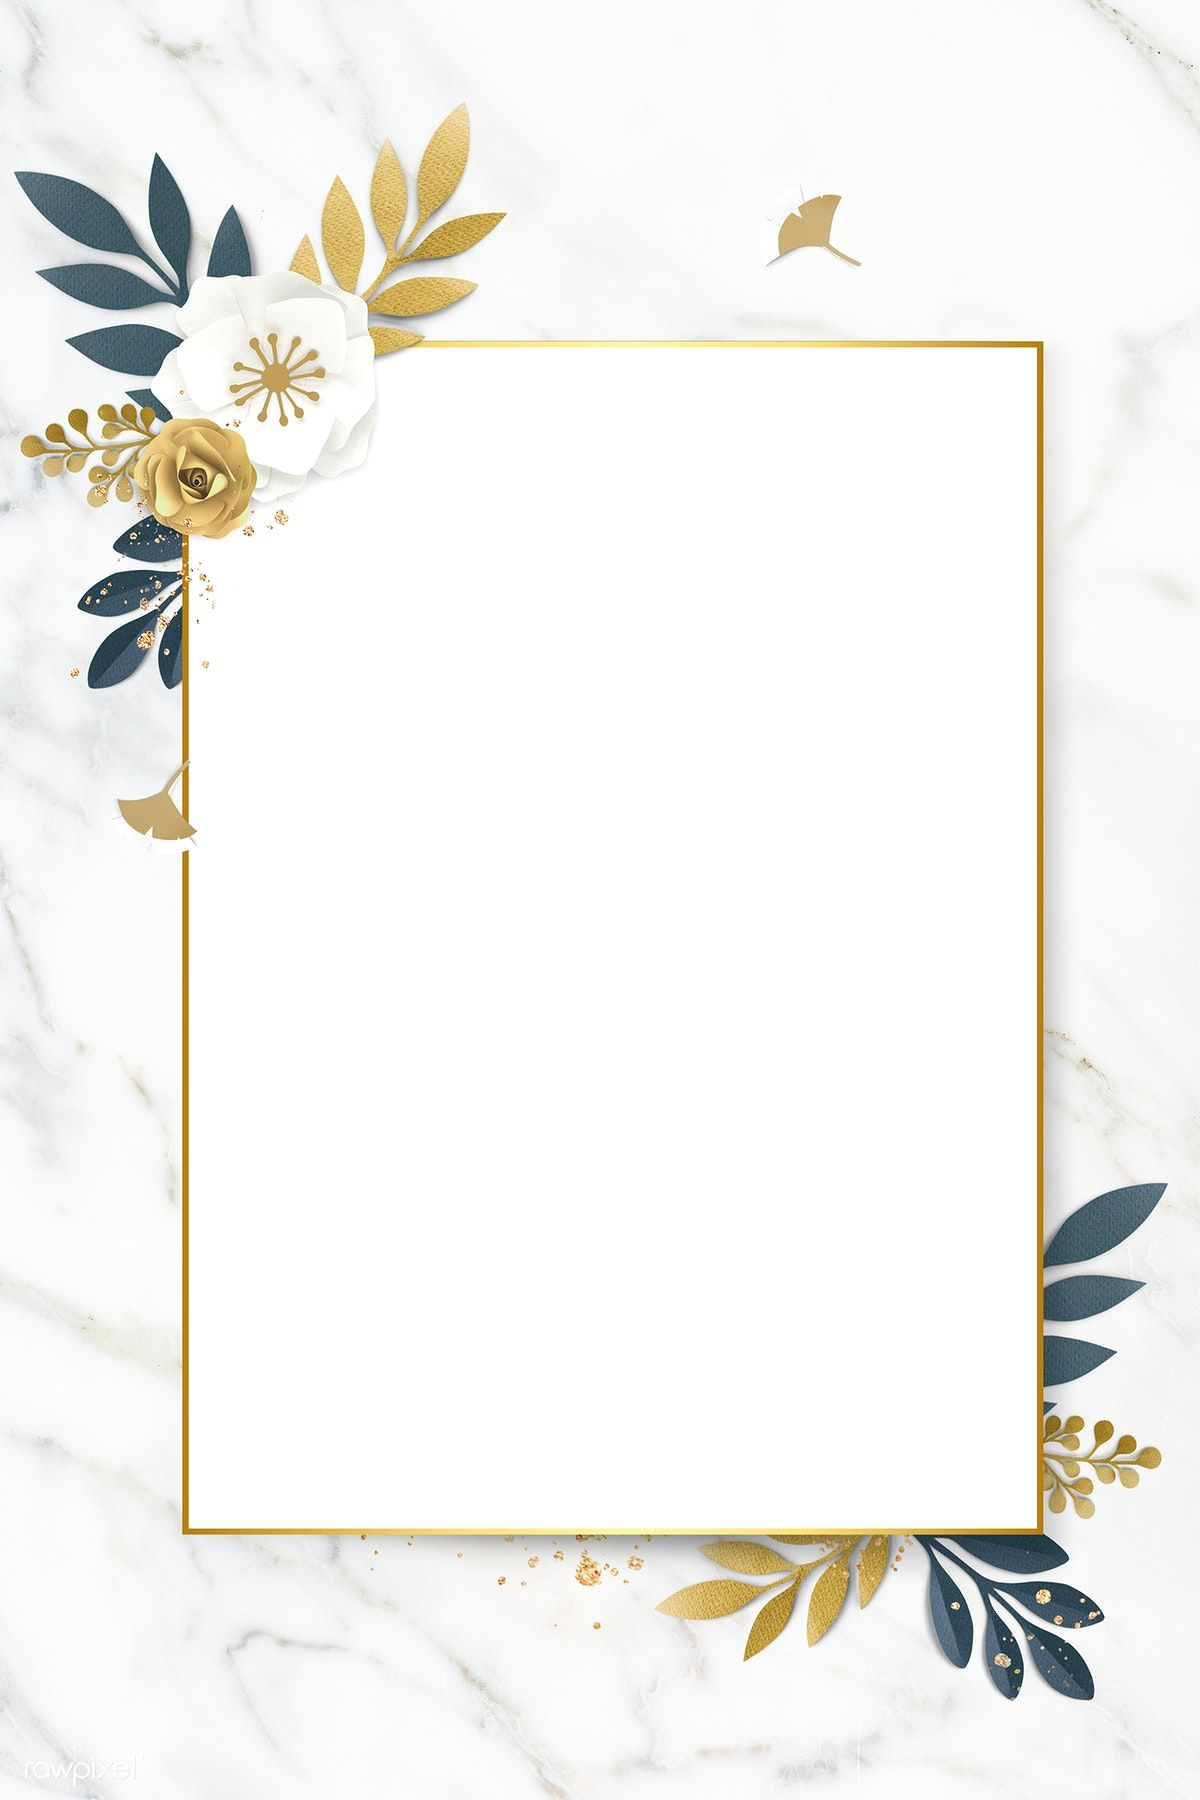 Download Premium Psd Of Rectangle Paper Craft Flower Frame Template Flower Frame Floral Border Design Flower Background Wallpaper